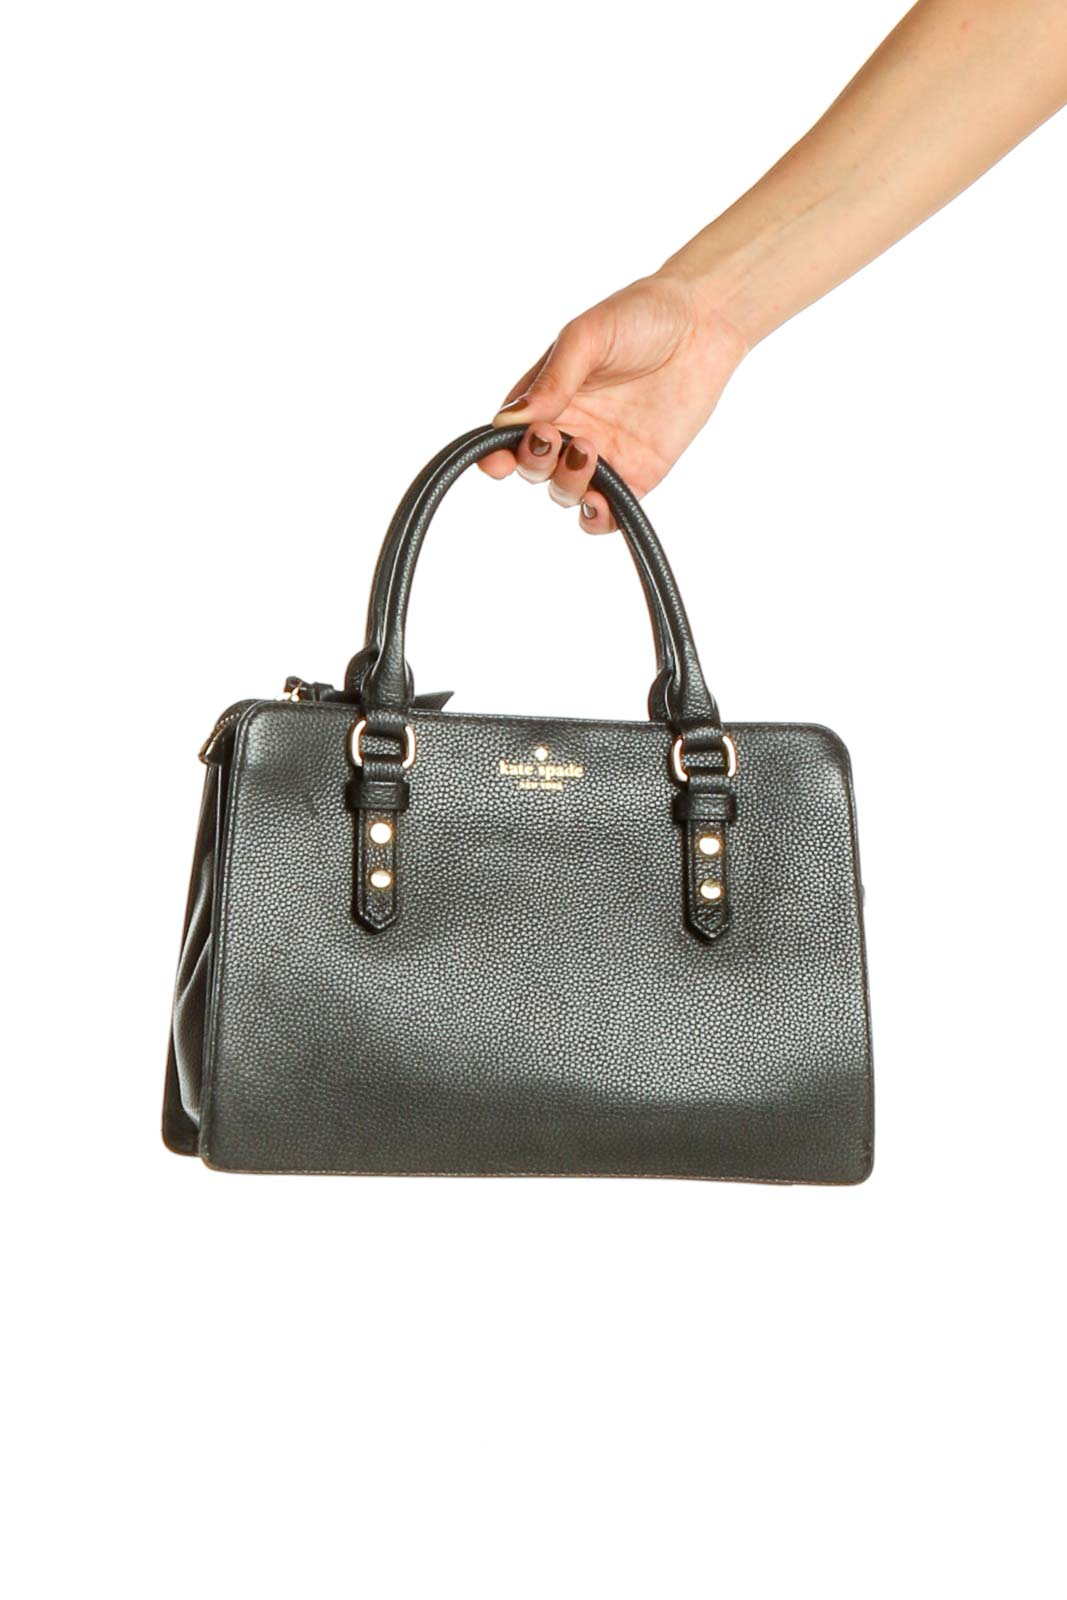 Black Satchel Bag Front